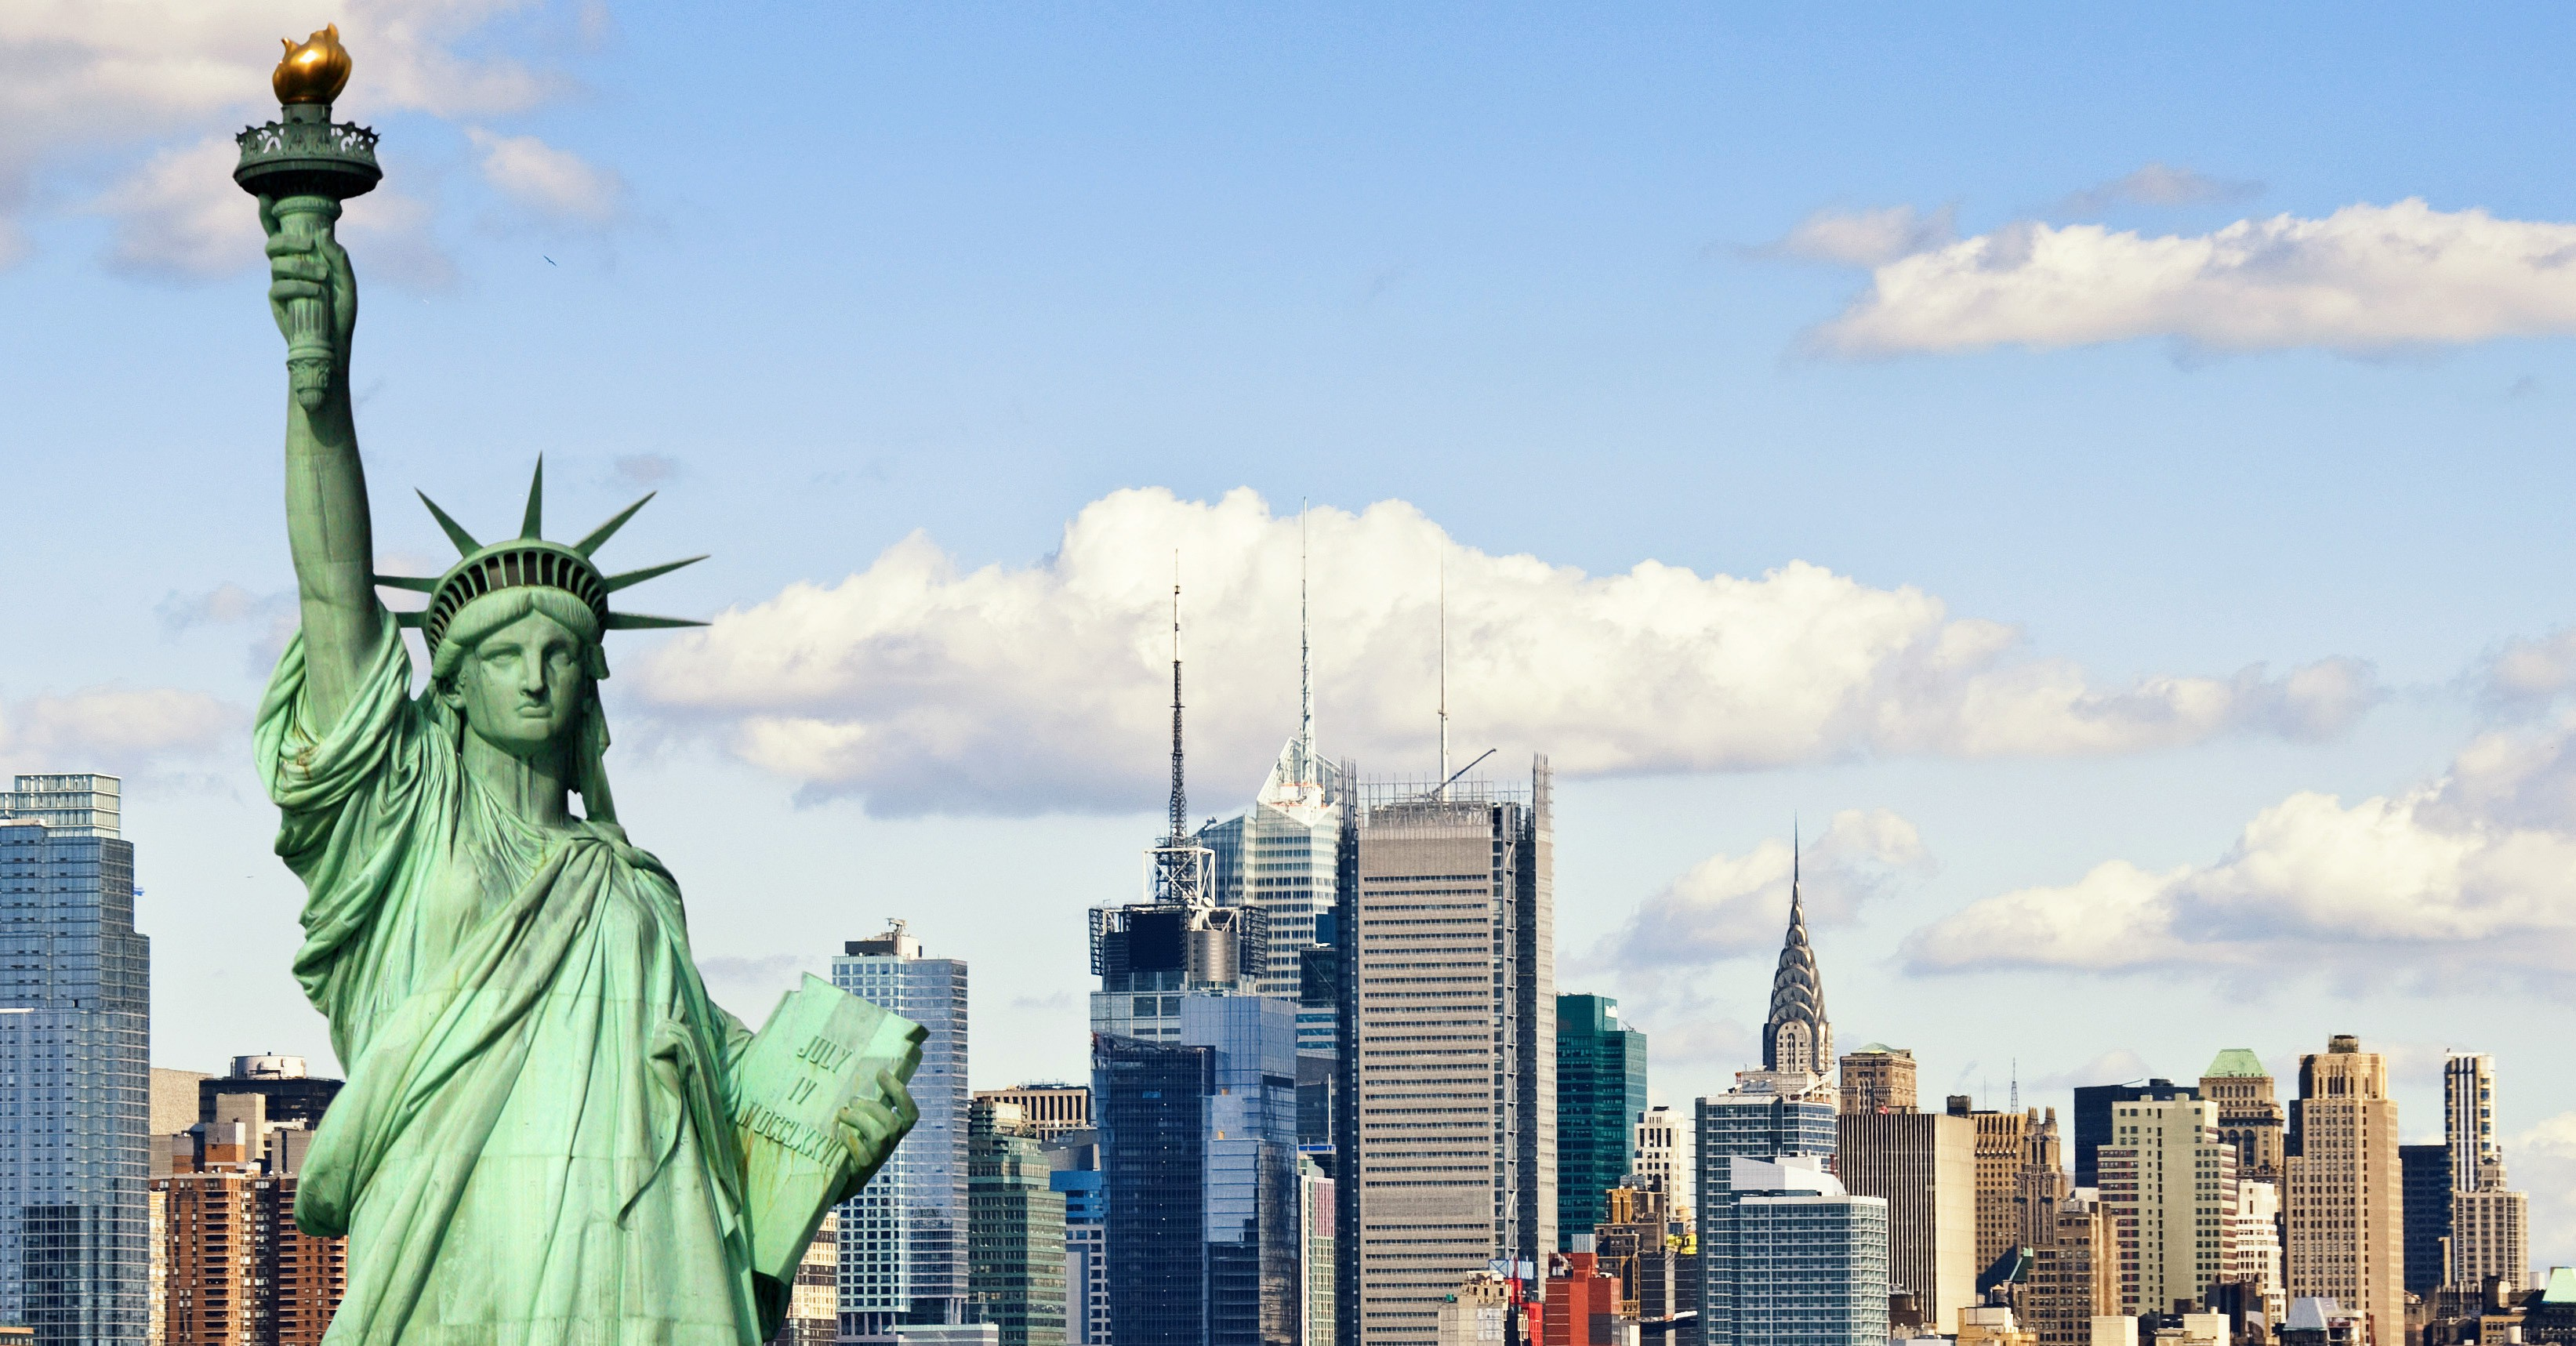 Statue of Liberty as seen against the New York City skyline.